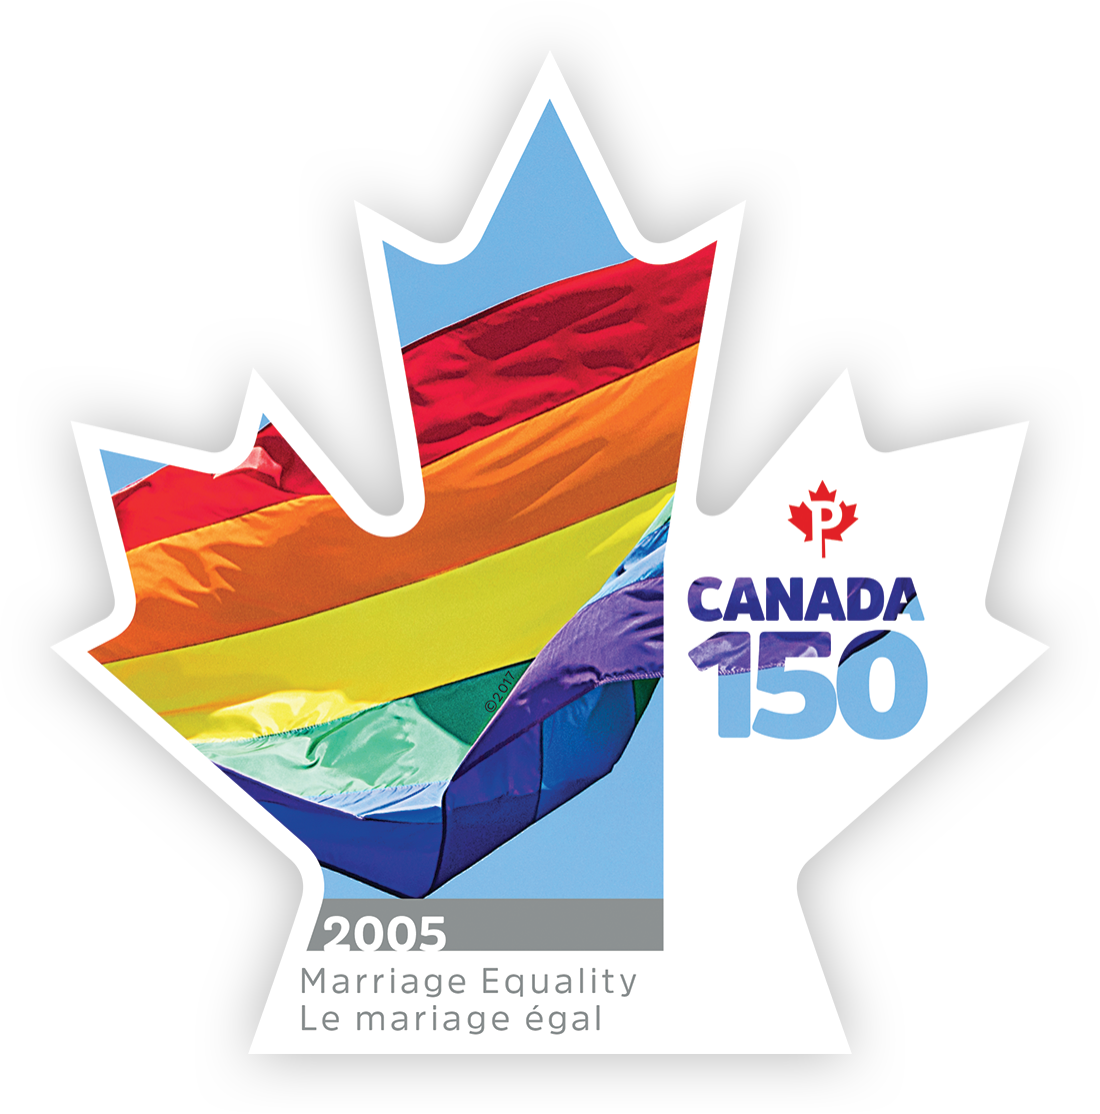 Marriage Equality - Canada 150 Canada Postage Stamp   Canada 150